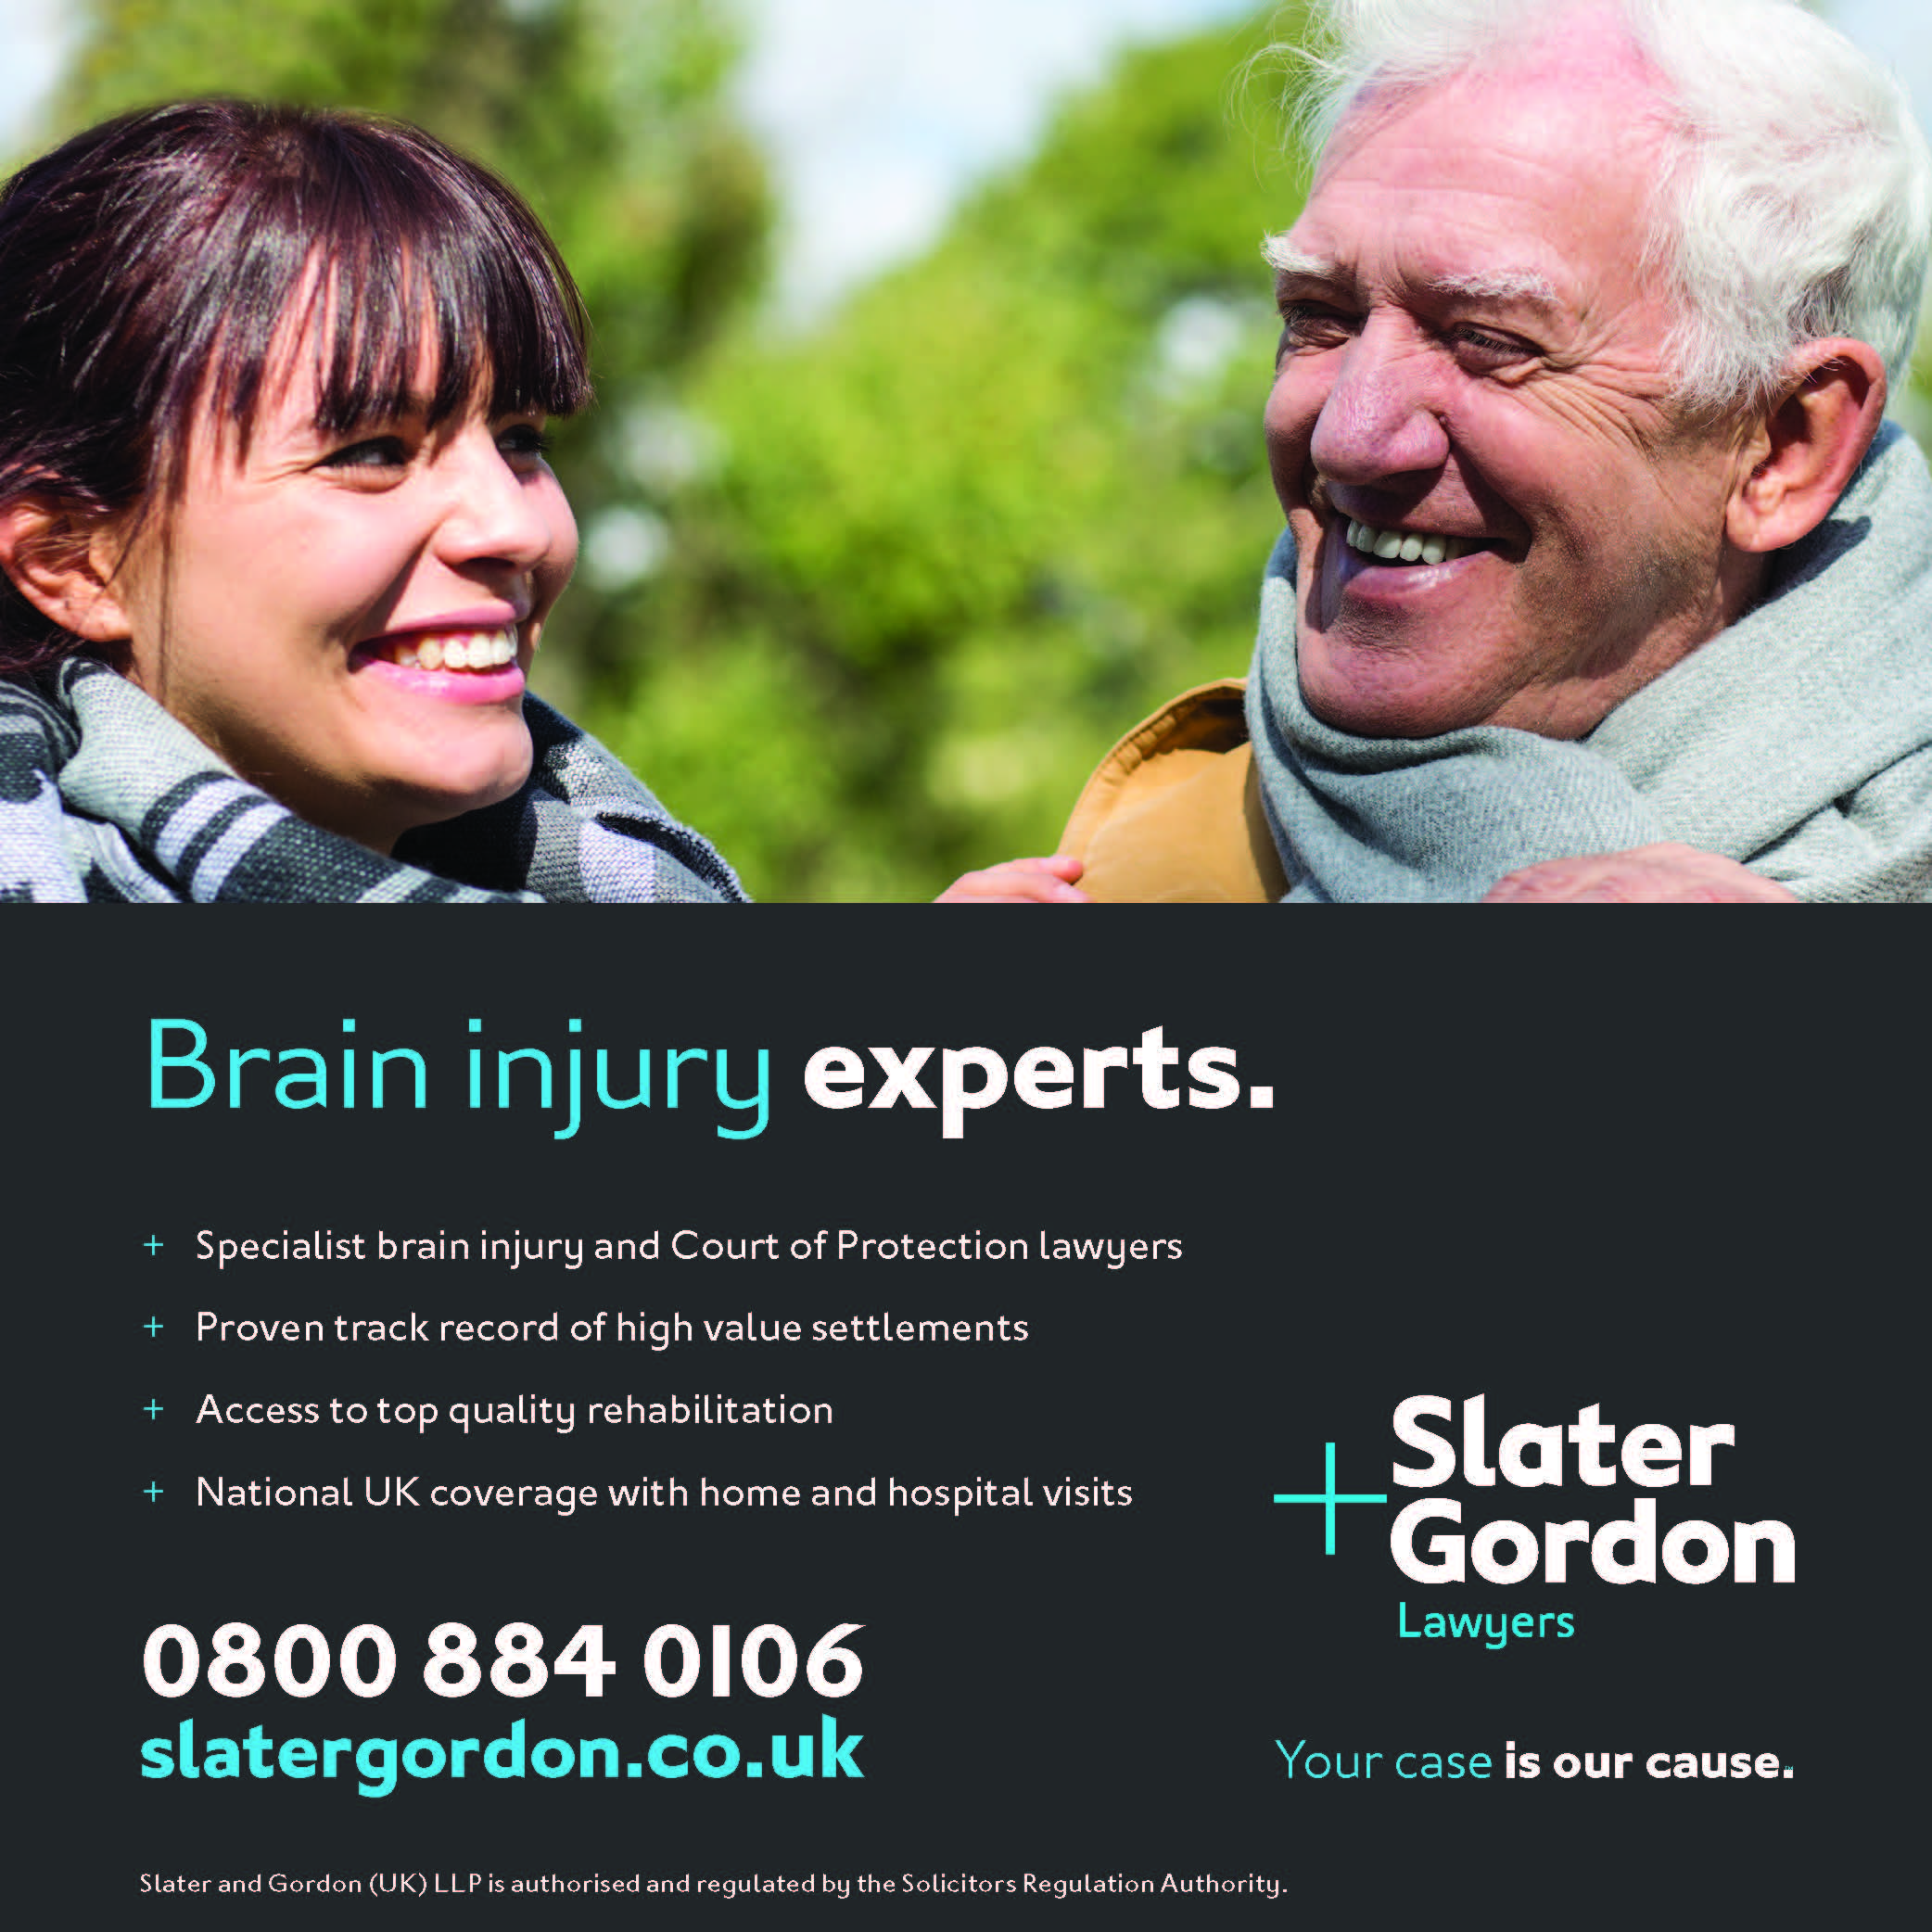 Slater & Gordon advert